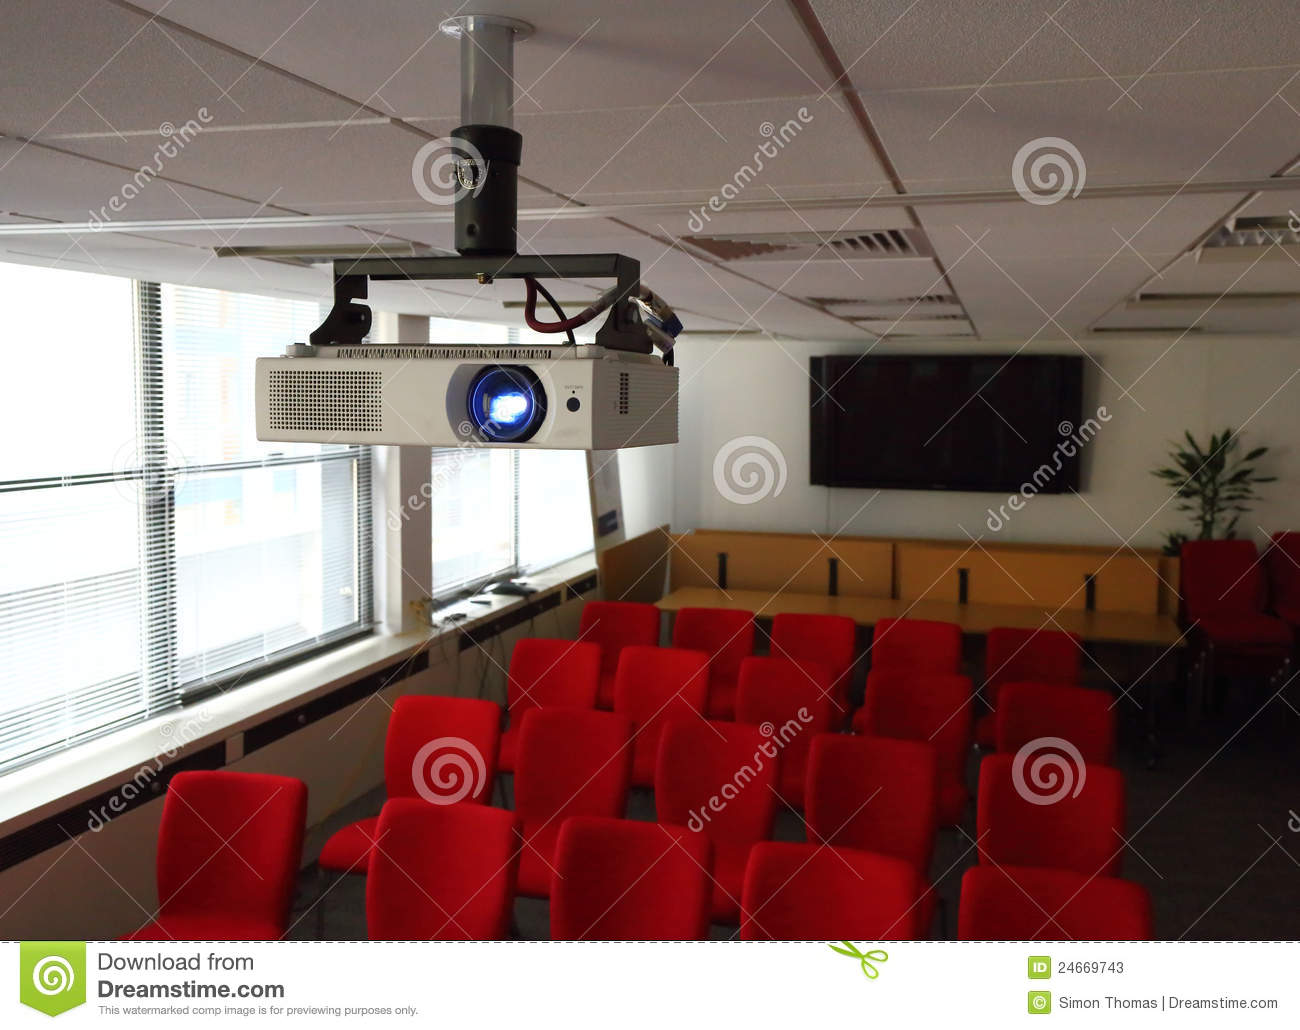 making perspective next gaming image threads size friend a lgdfmha tv pic page projector give some with stood my theater neogaf on or room also the of to it